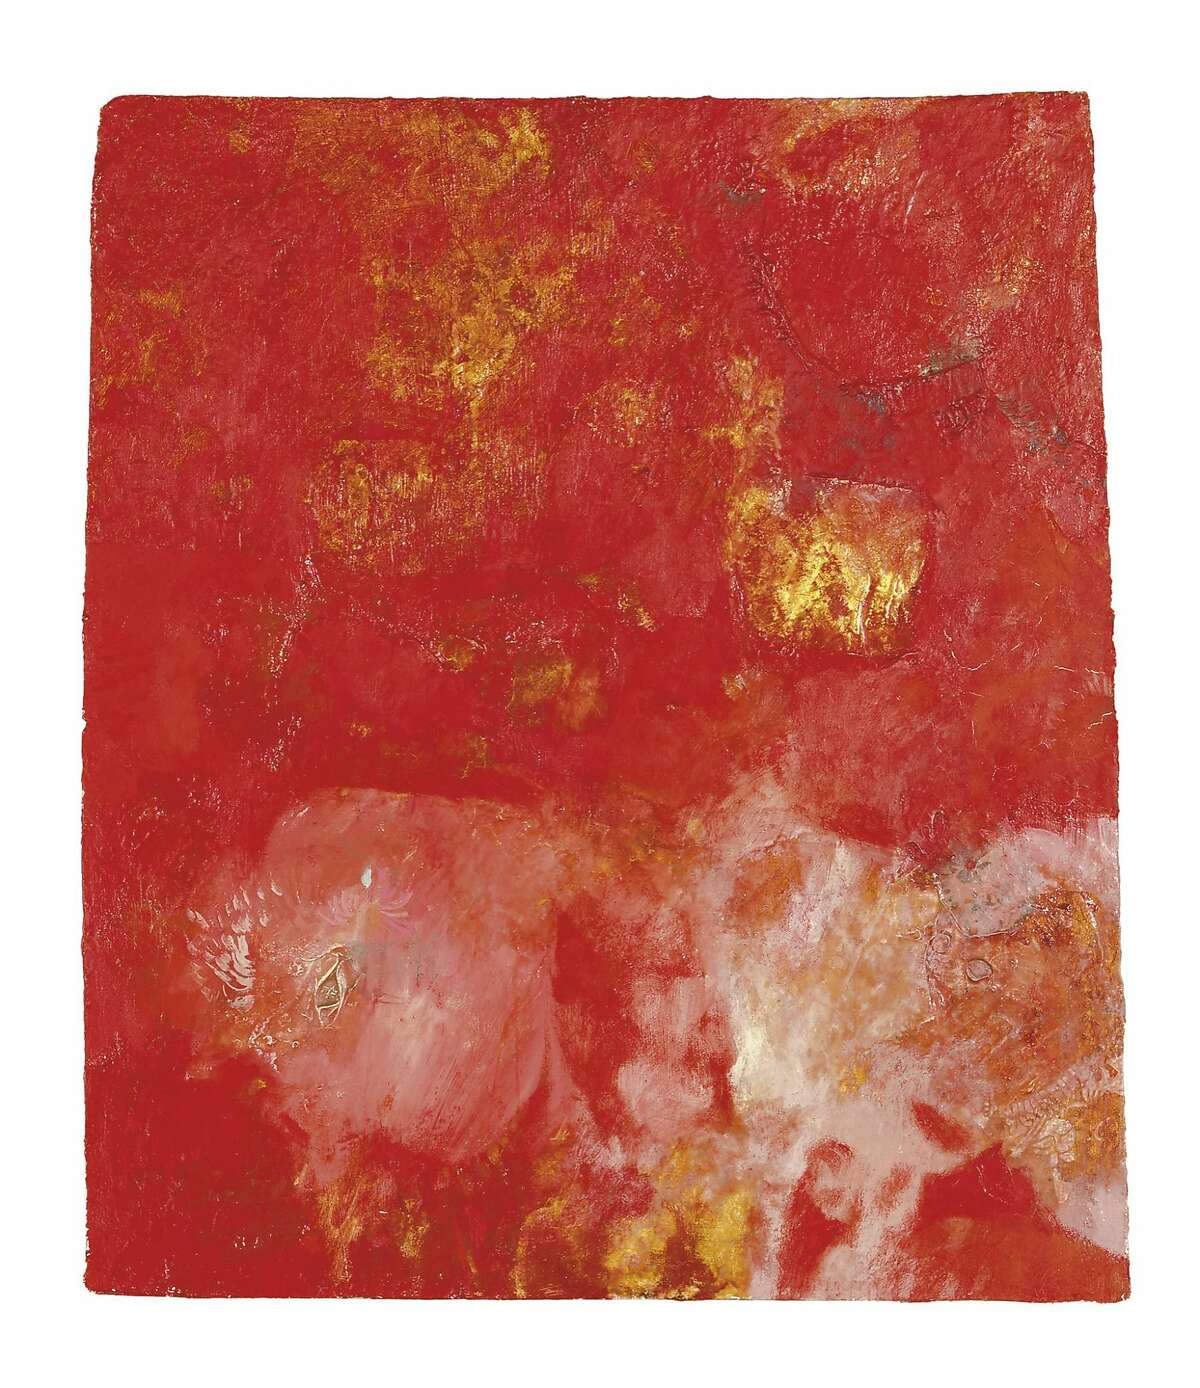 UNTITLED, May 10, 1957; oil and gold leaf on Masonite.